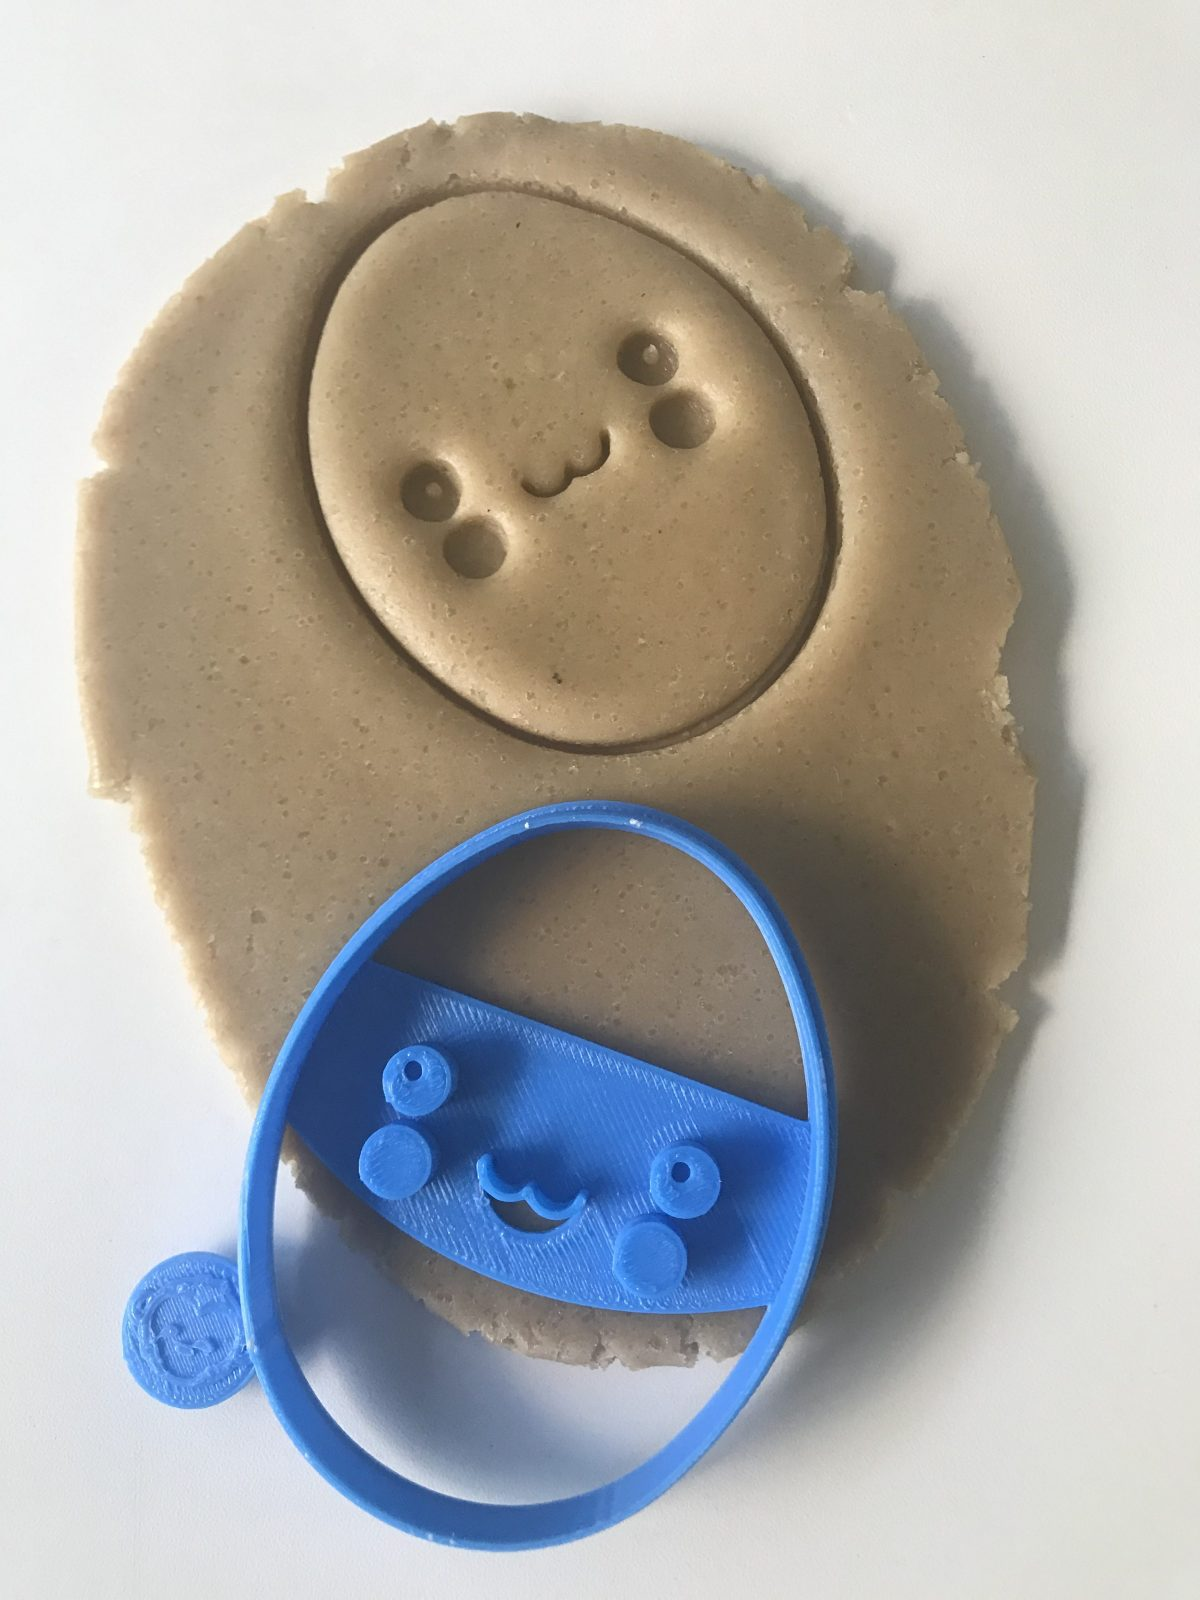 Normal Egg Cookie Cutter